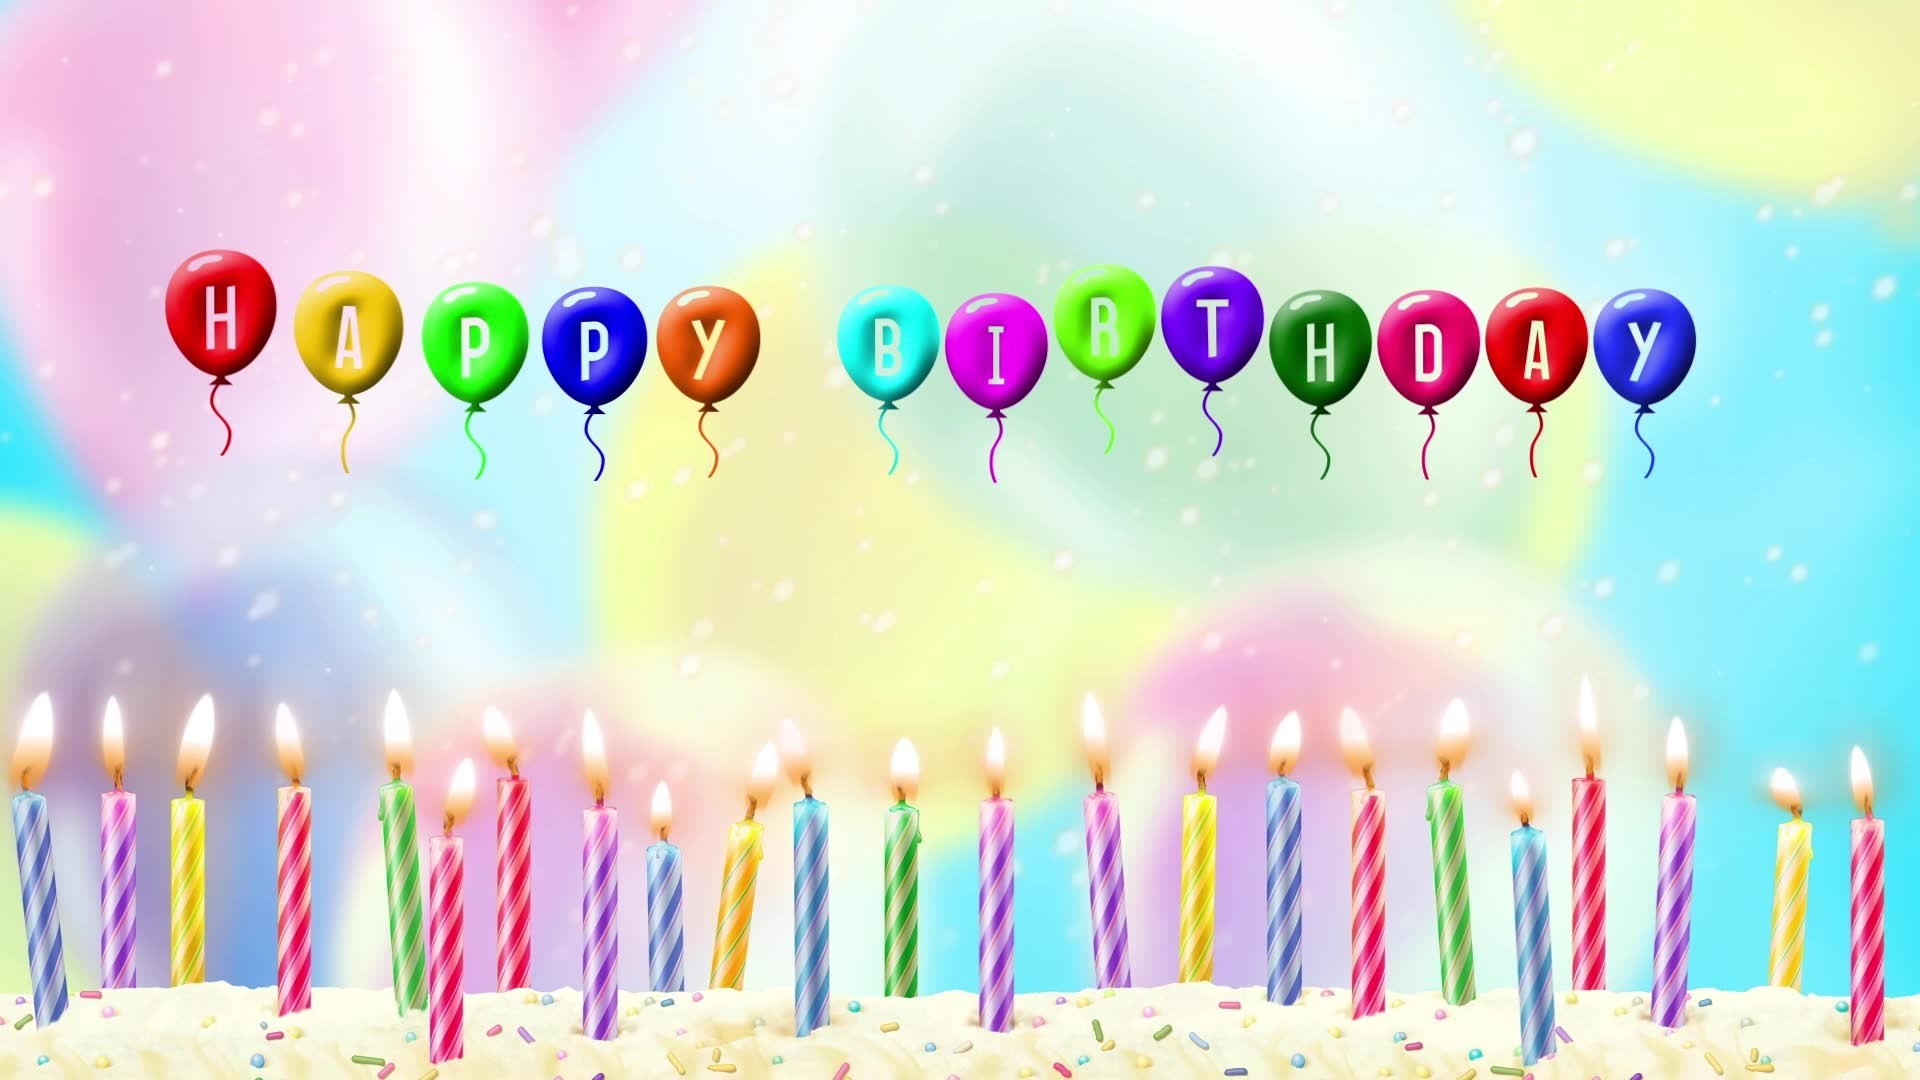 Happy Birthday Wallpapers Hd Images Live Hd Wallpaper Happy Birthday Background Hd 1920x1080 Wallpaper Teahub Io